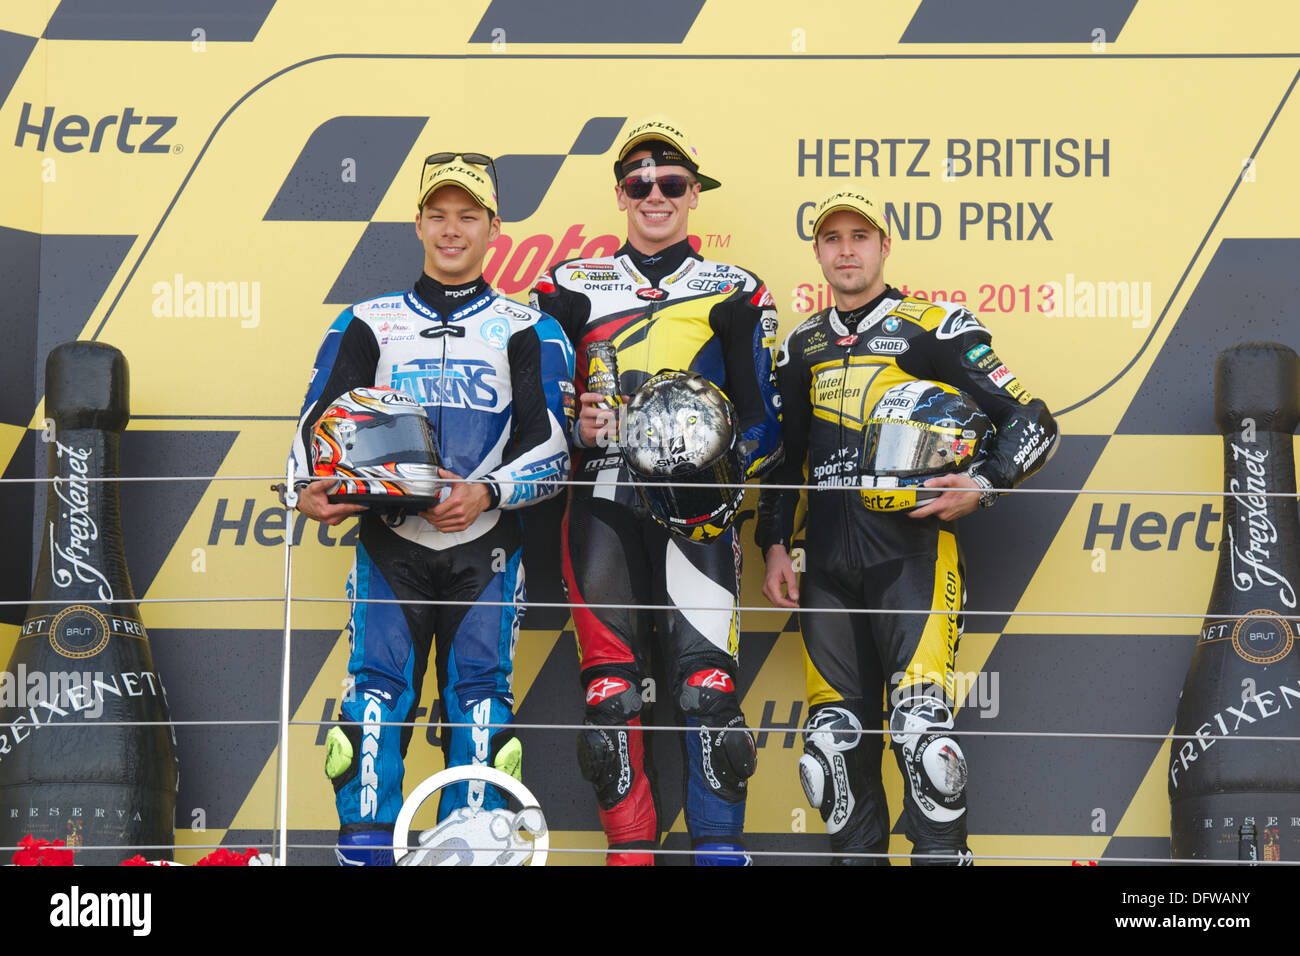 Scott Redding, Takaaki Nakagami and Thomas Luthi stand on the Silverstone Podium after winning the Moto2 race - Stock Image